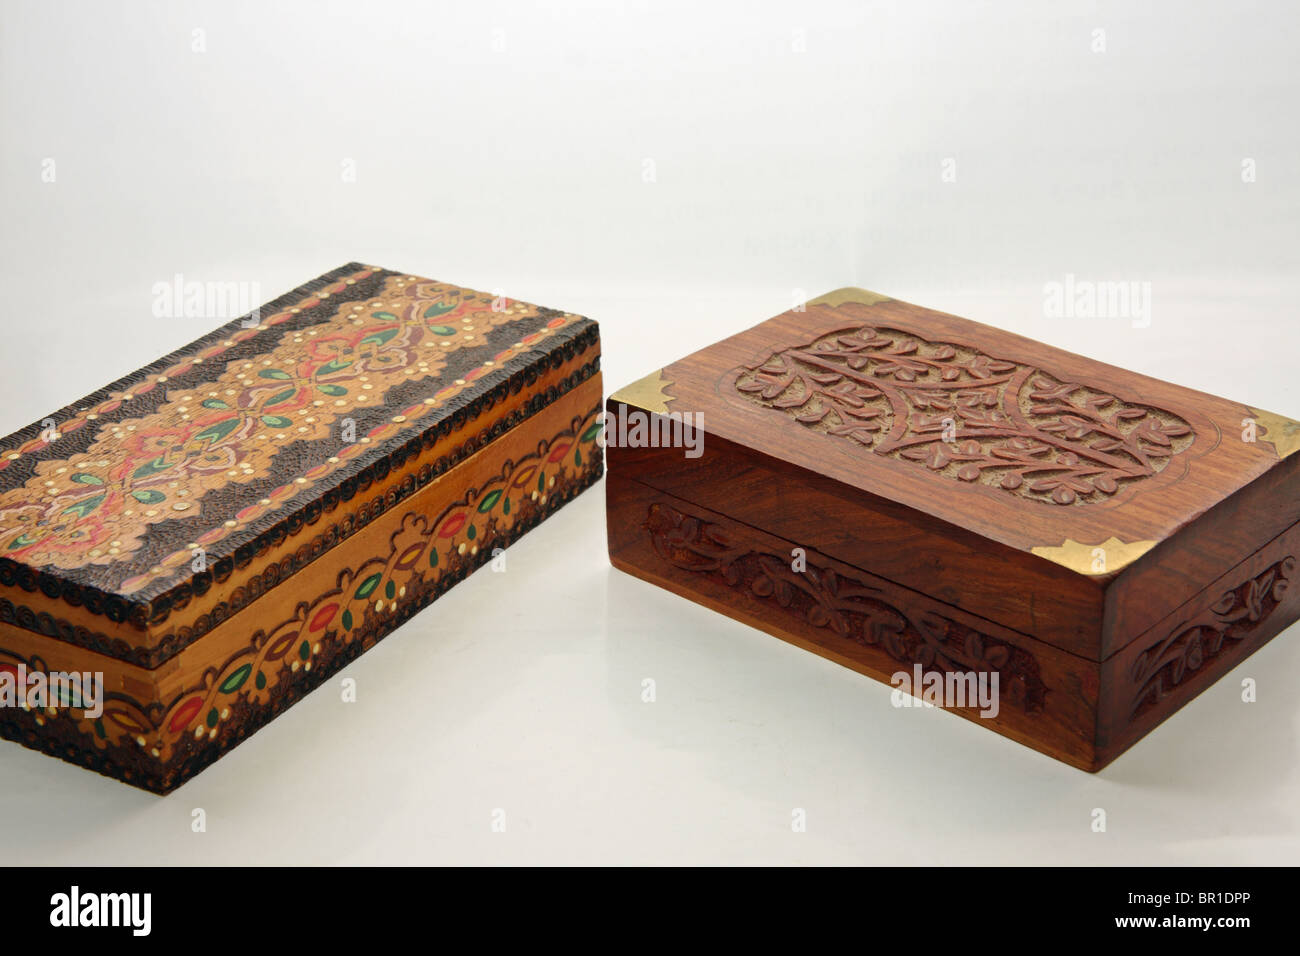 Wooden jewel-boxes - Stock Image